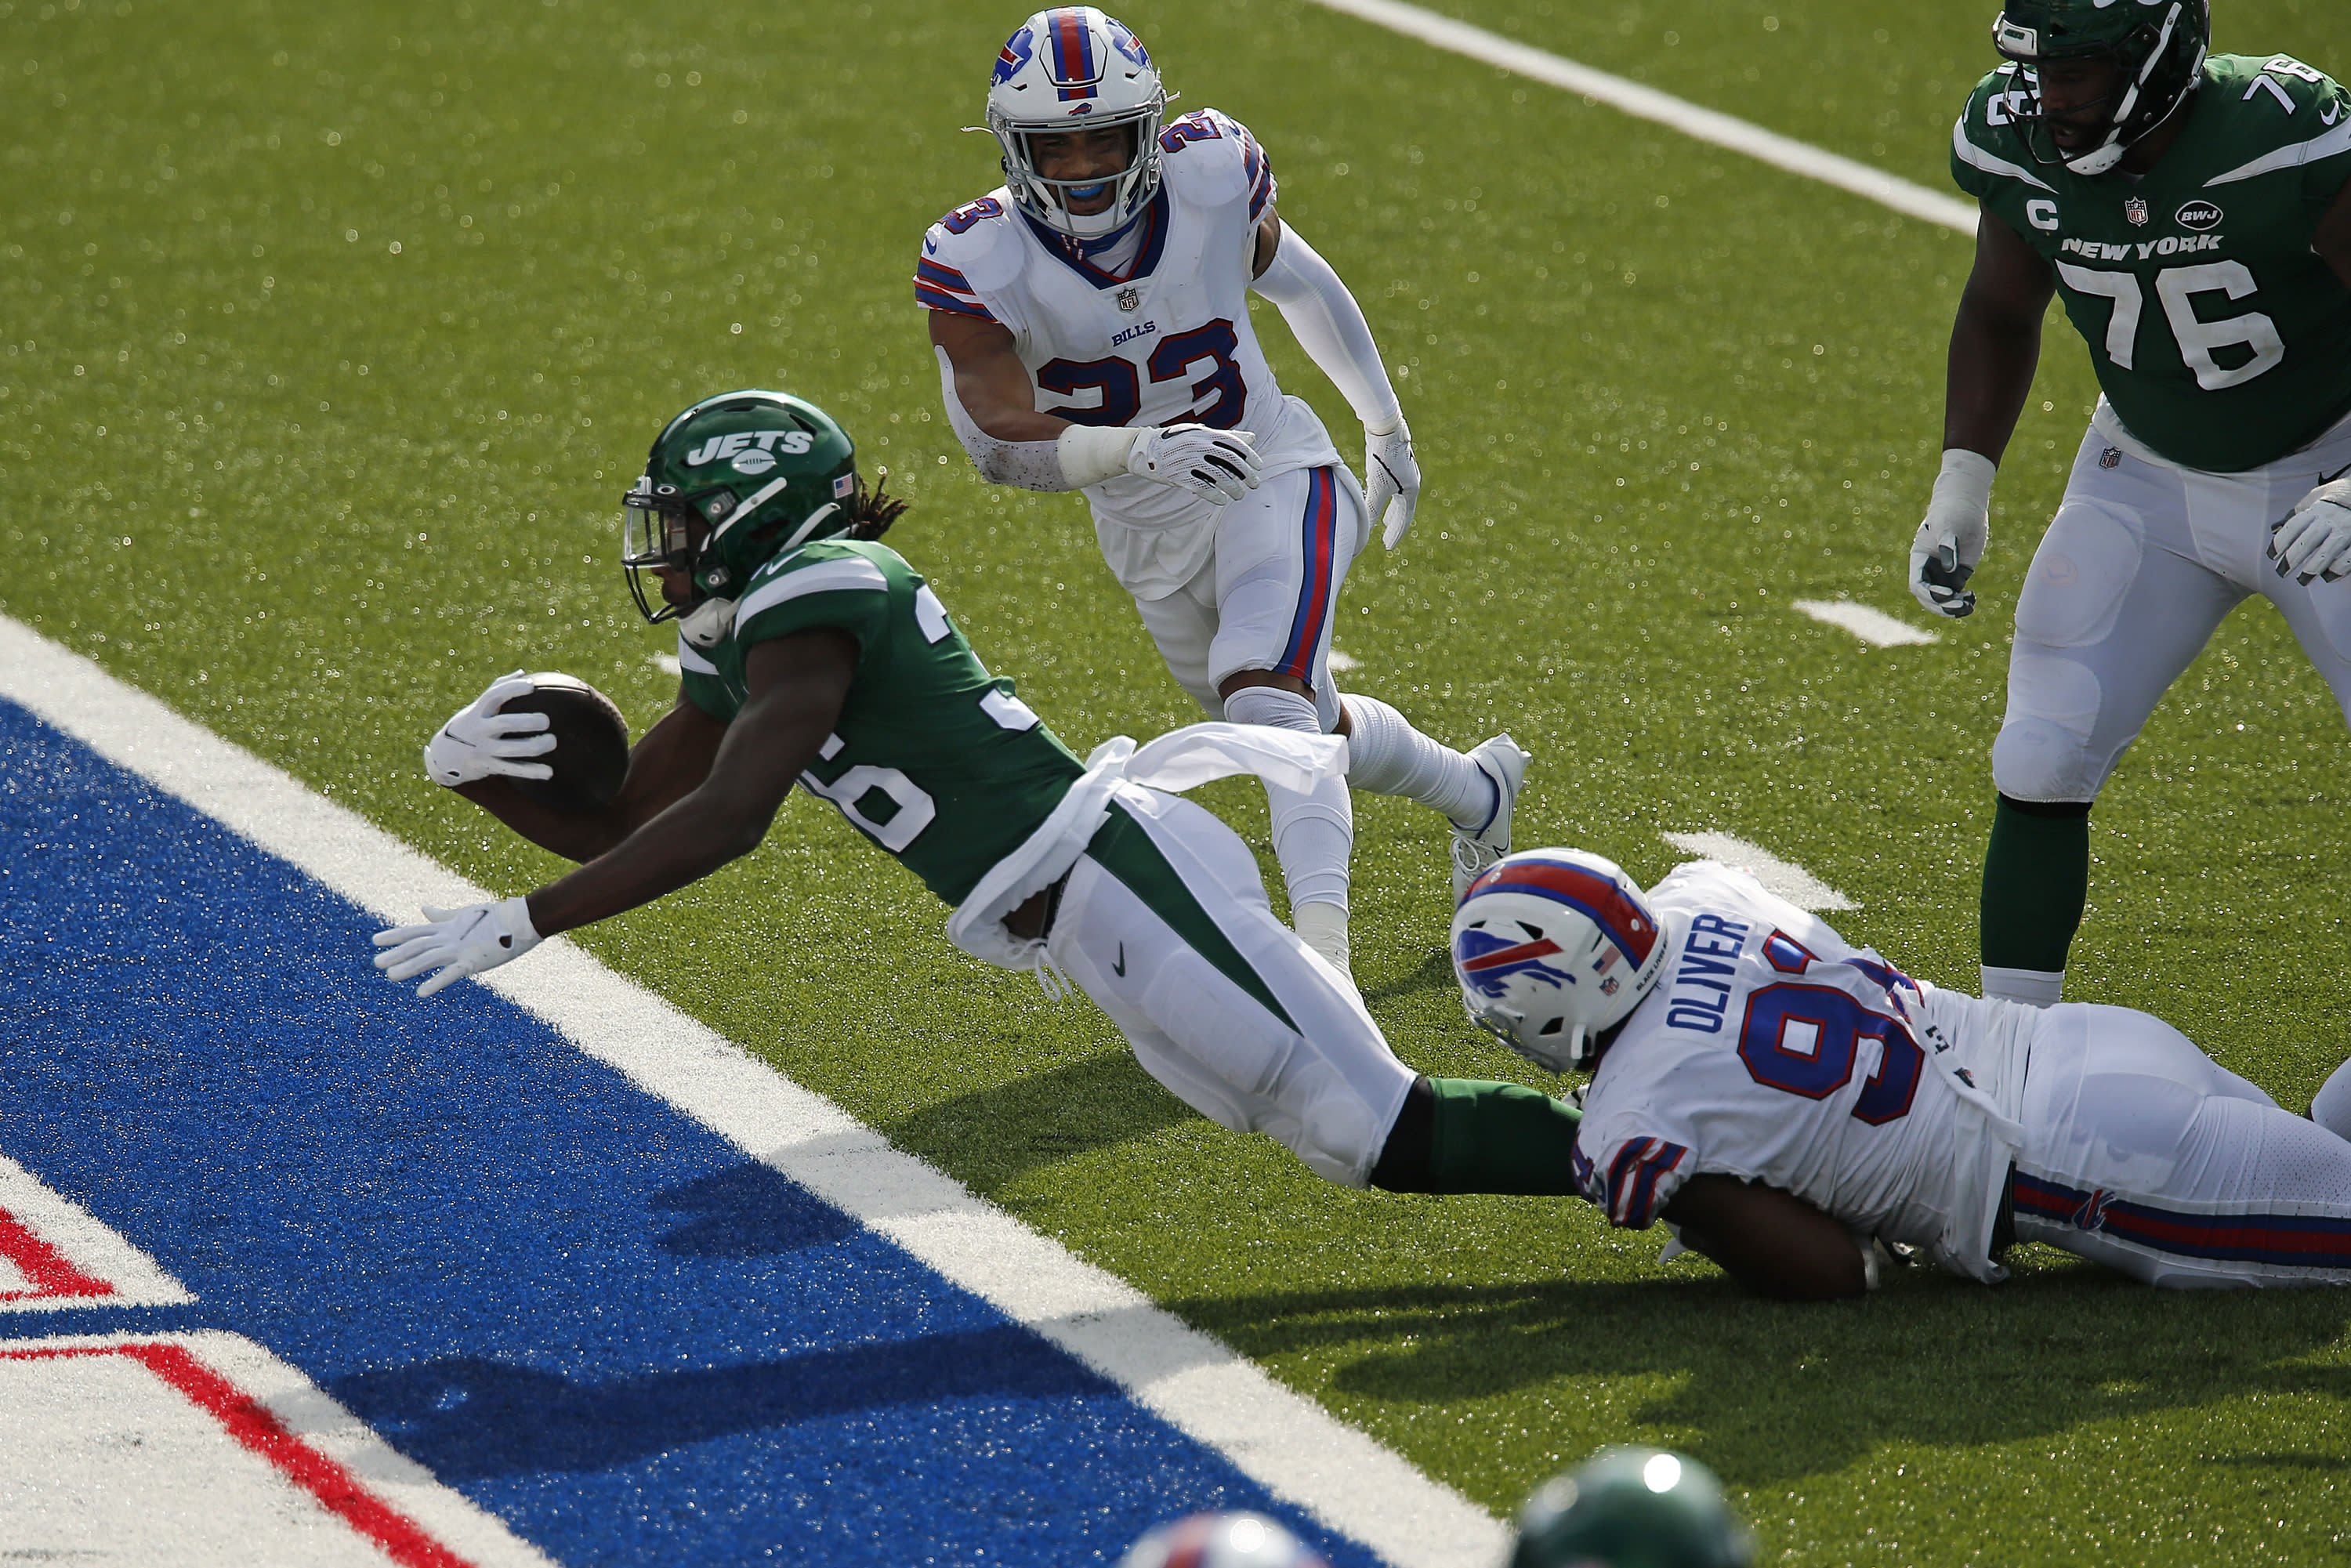 New York Jets running back Josh Adams (36) falls into the endzone for a touchdown while in the grasp of Buffalo Bills defensive tackle Ed Oliver (91) during the second half of an NFL football game in Orchard Park, N.Y., Sunday, Sept. 13, 2020. The Bills won 27-17. (AP Photo/John Munson)